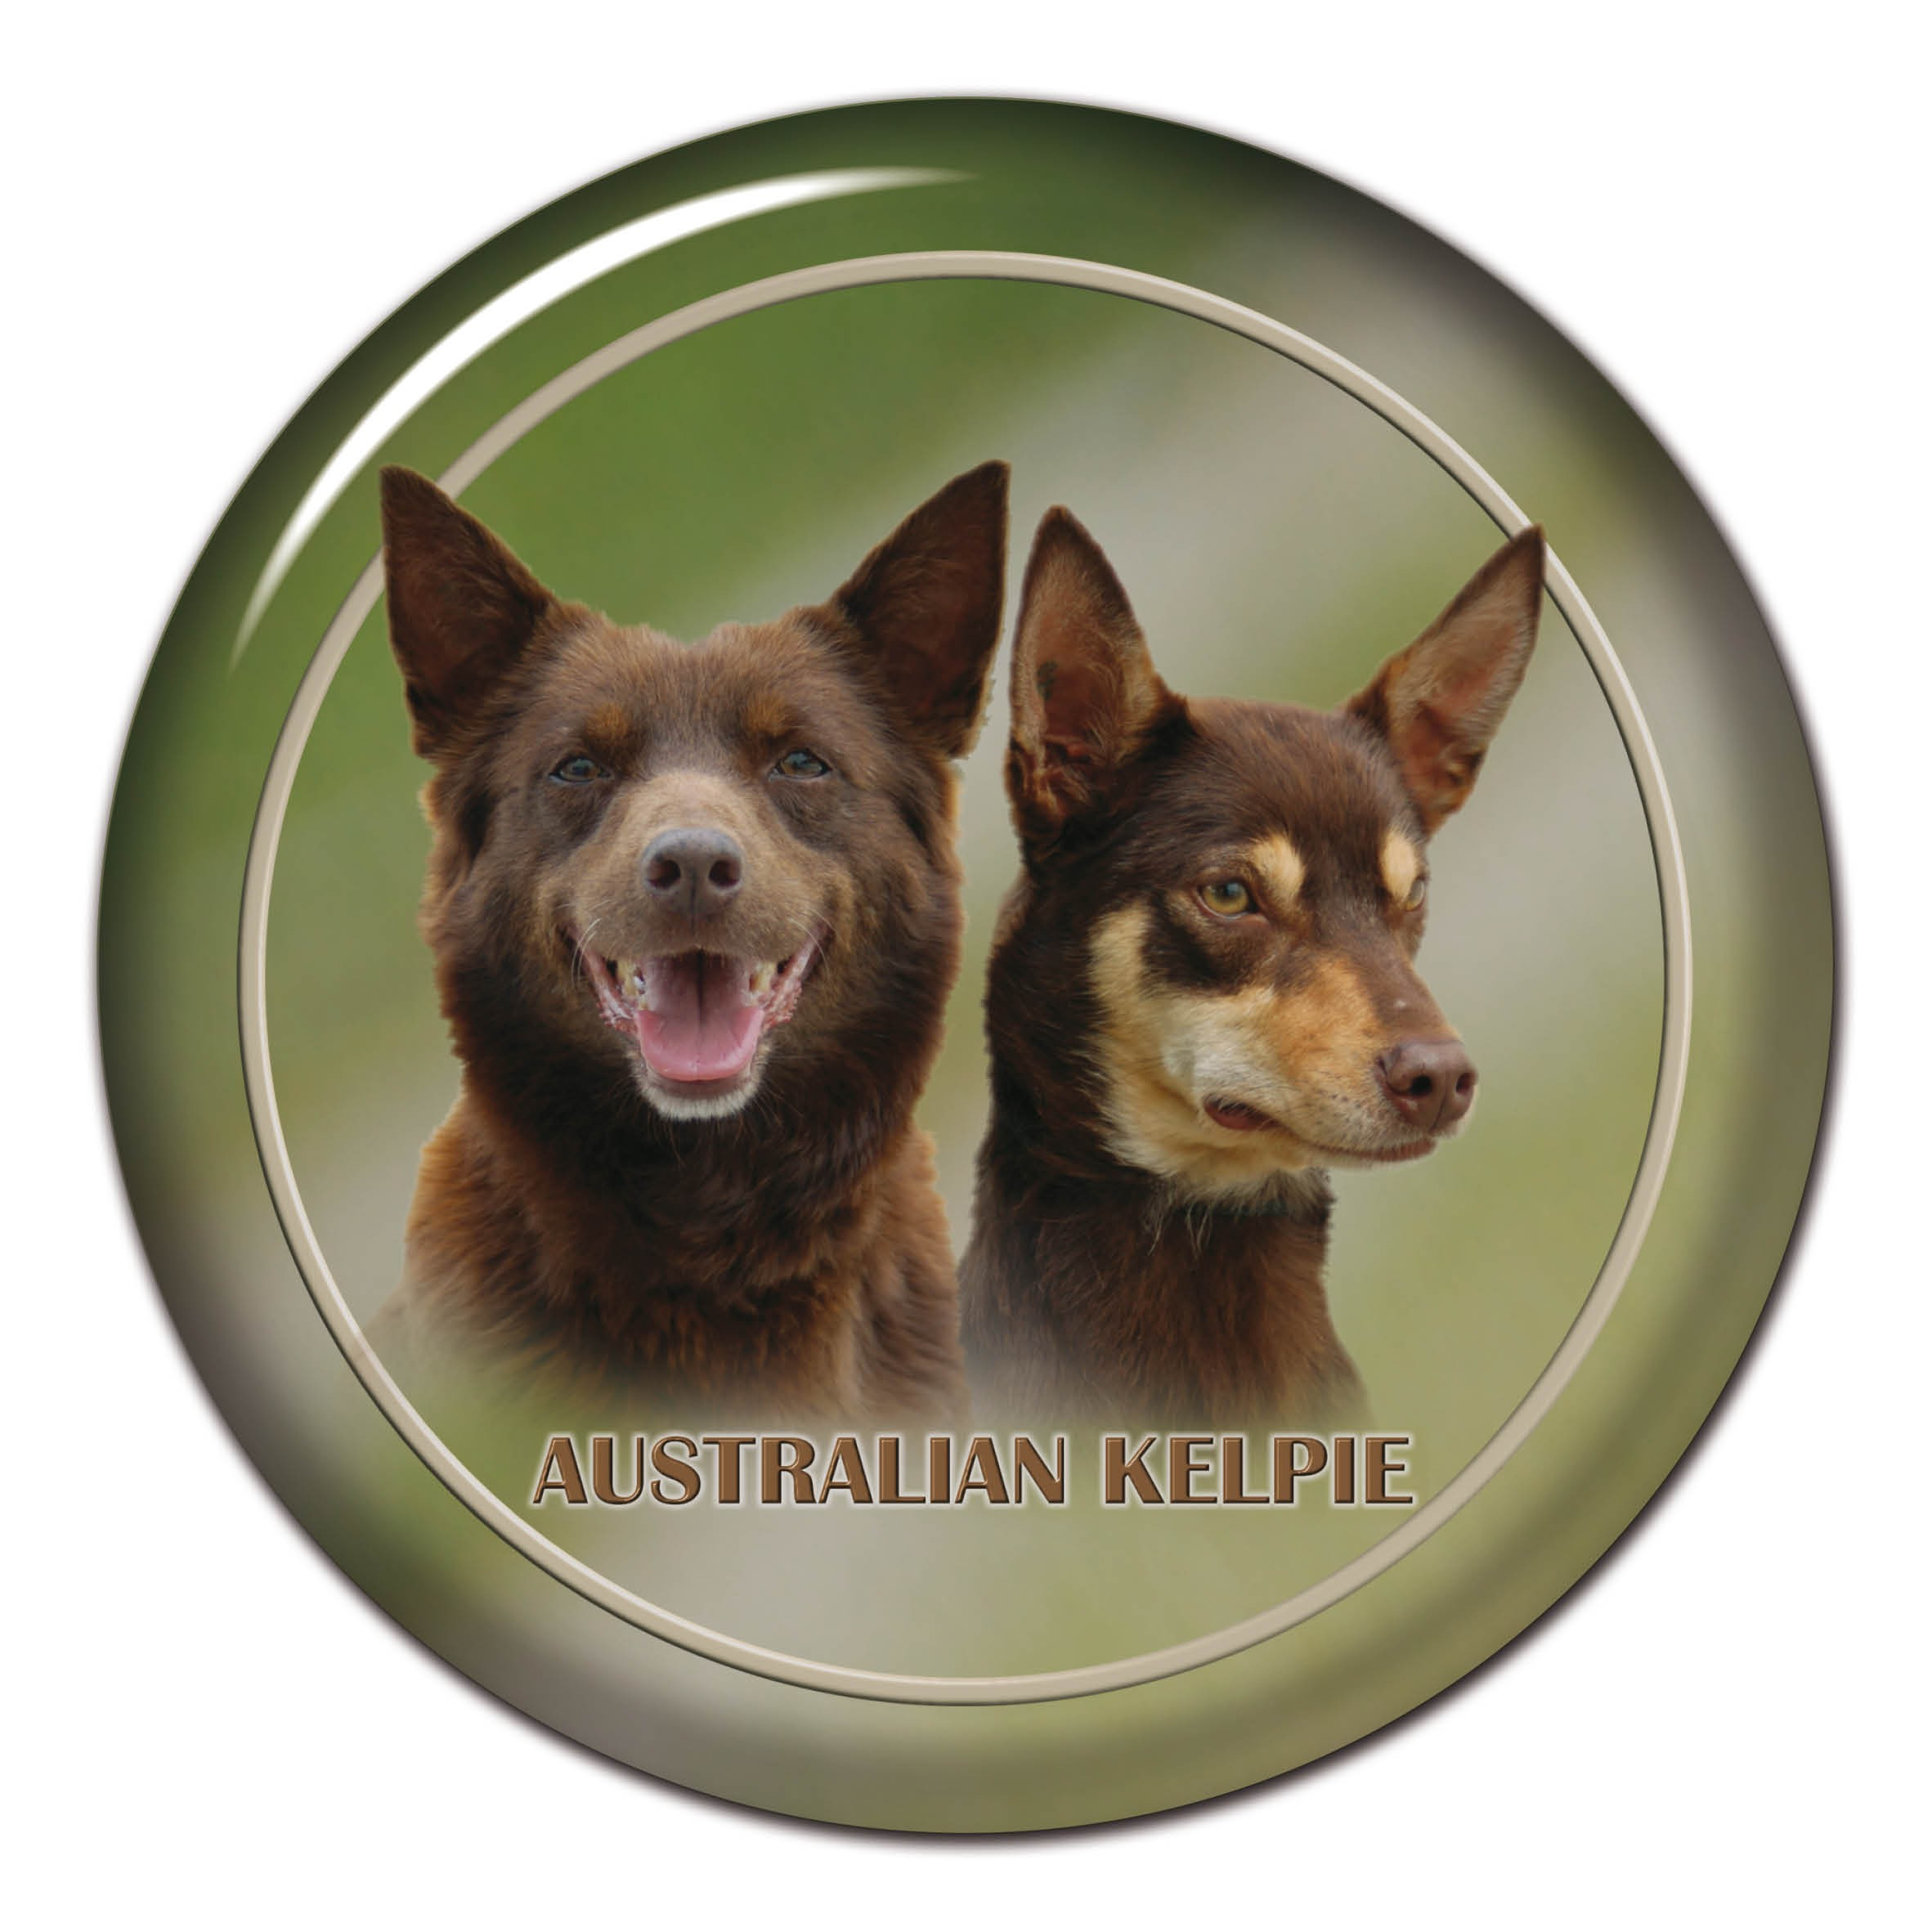 Swell 3D Sticker Australian Kelpie 101 C From Alldogstickers Com Pdpeps Interior Chair Design Pdpepsorg